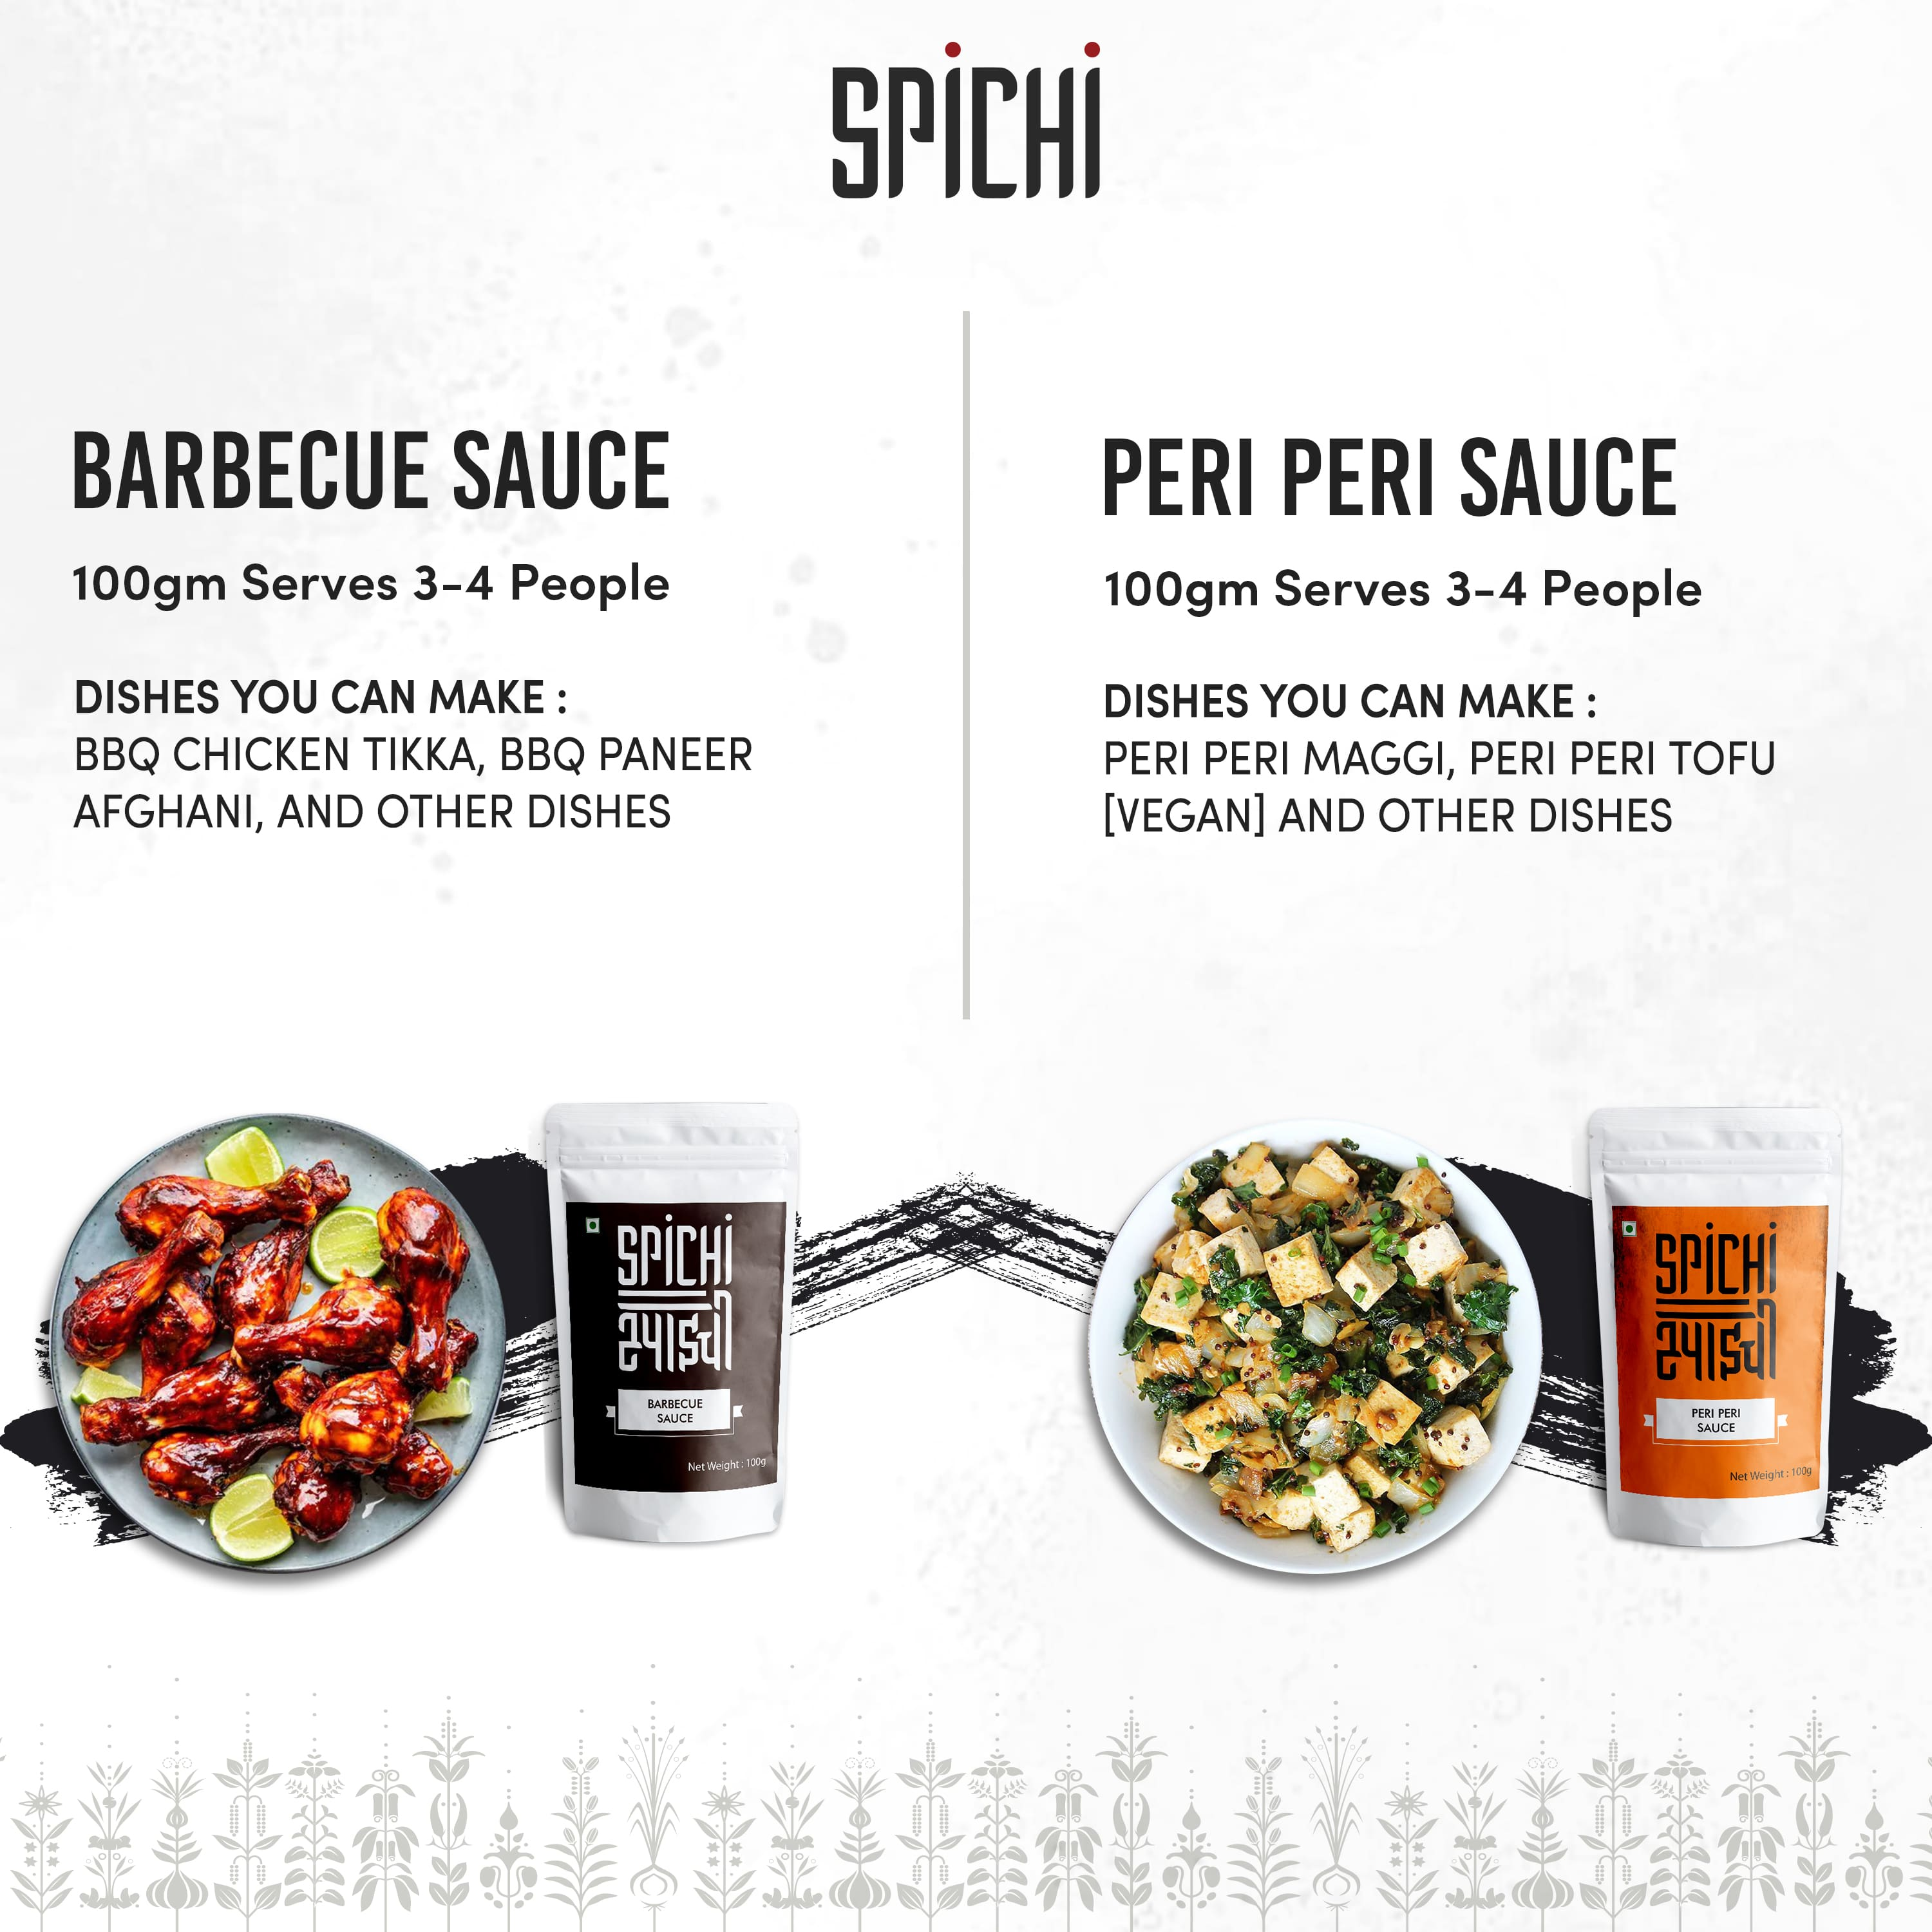 BARBECUE SAUCE AND PERI PERI SAUCE COMBO